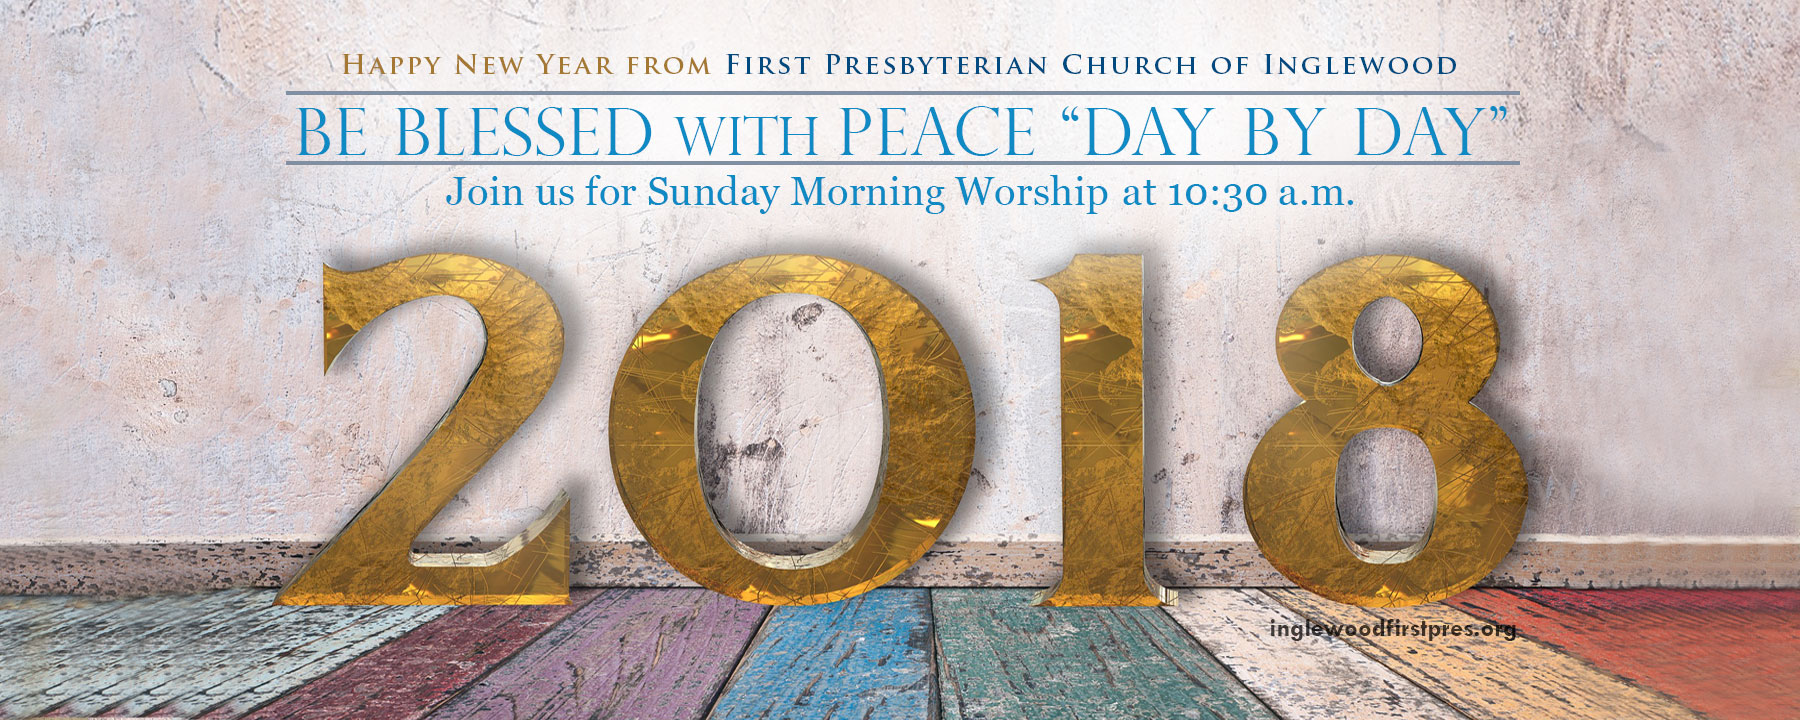 Happy New Year - visit our inglewood church